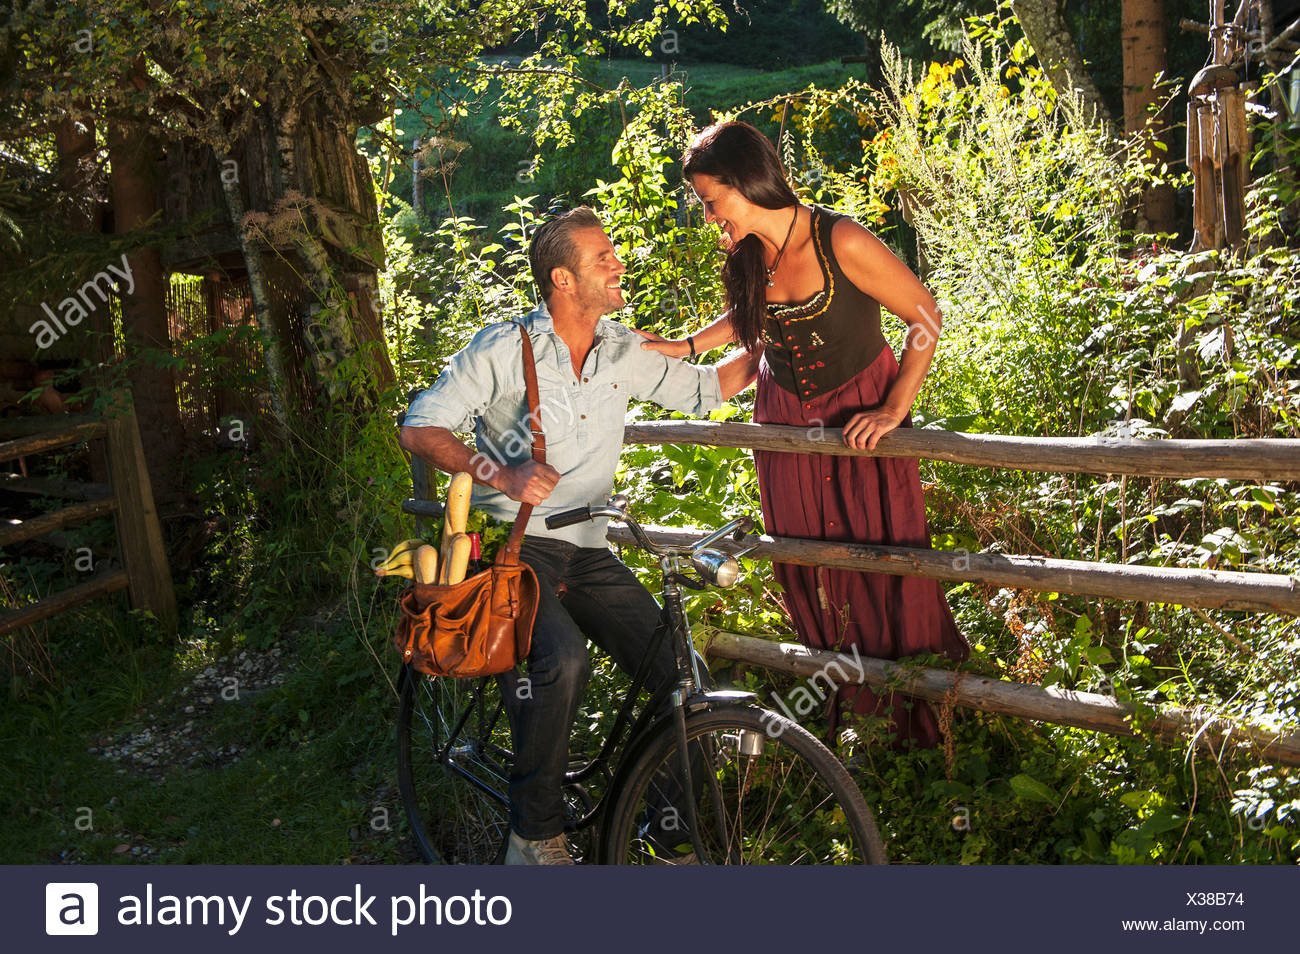 Austria Salzburg Country Mature Couple In Garden Smiling Stock